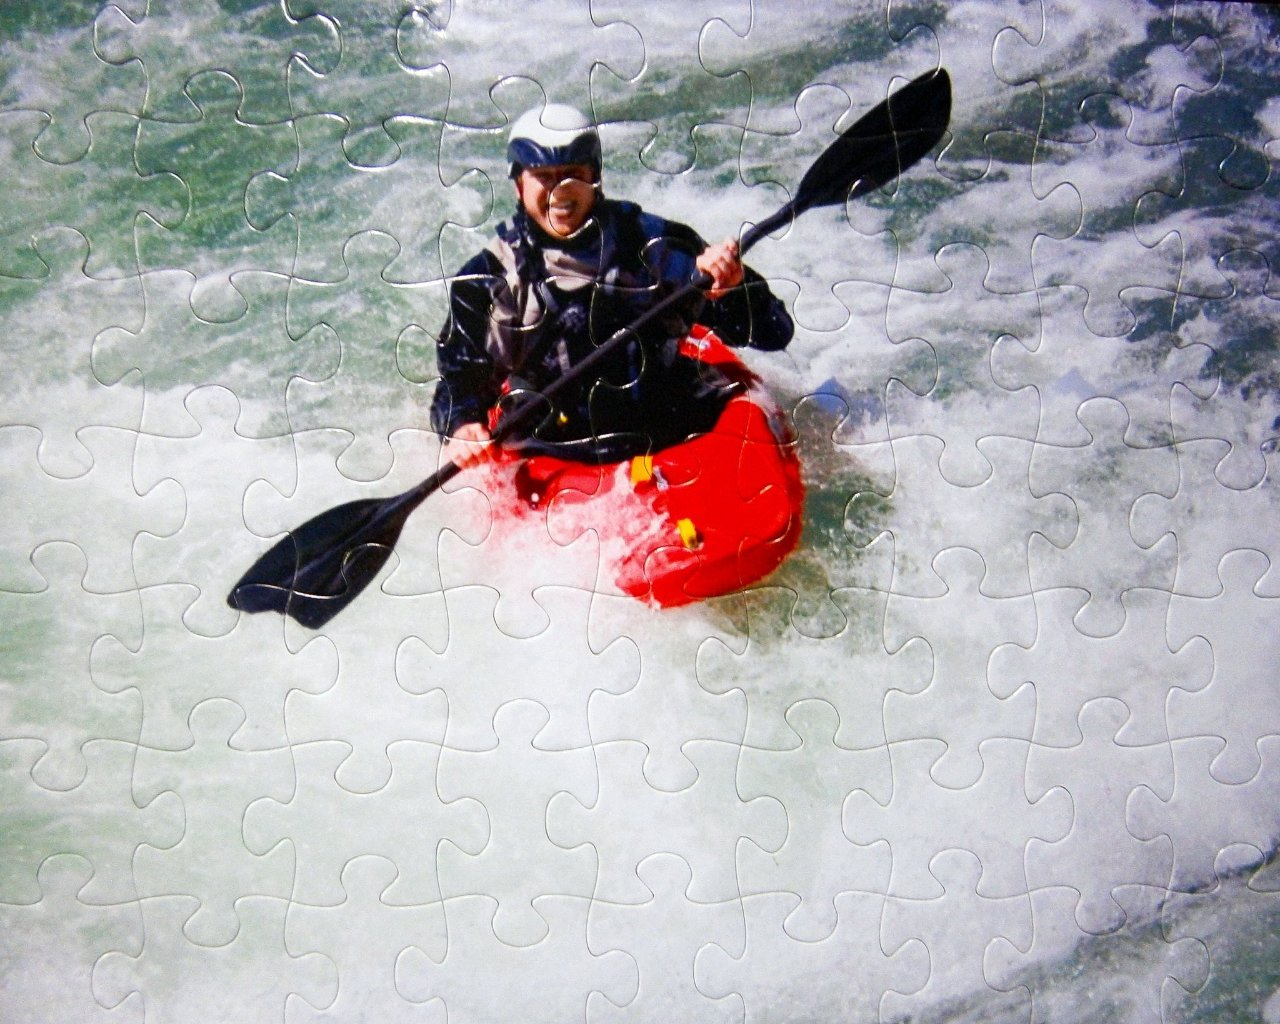 Extra Large Puzzle Pieces 16x20 Inch Puzzle With 63 Pieces of kayaker on whitewater rapids - The Missing Piece Puzzle Company